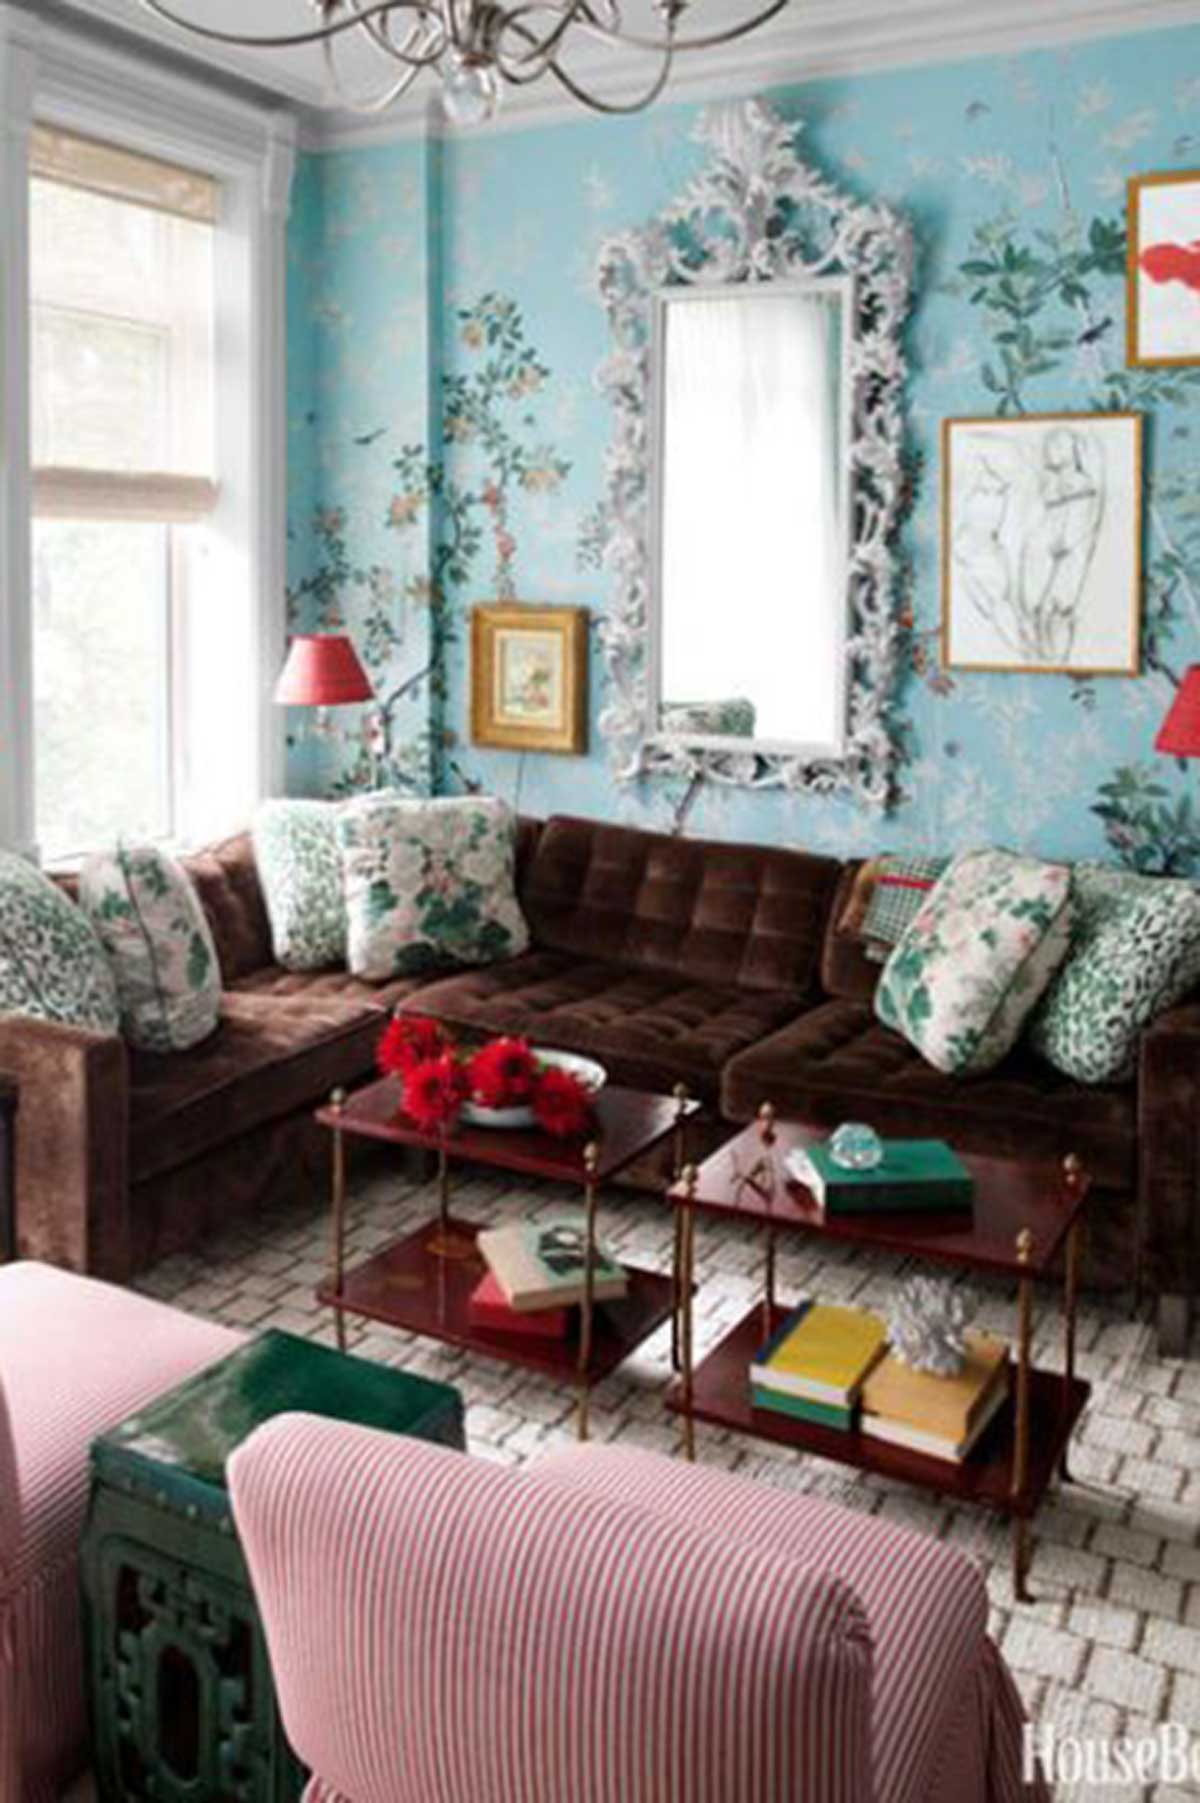 Vintage interior design Achieve a vintage style without the op shop look